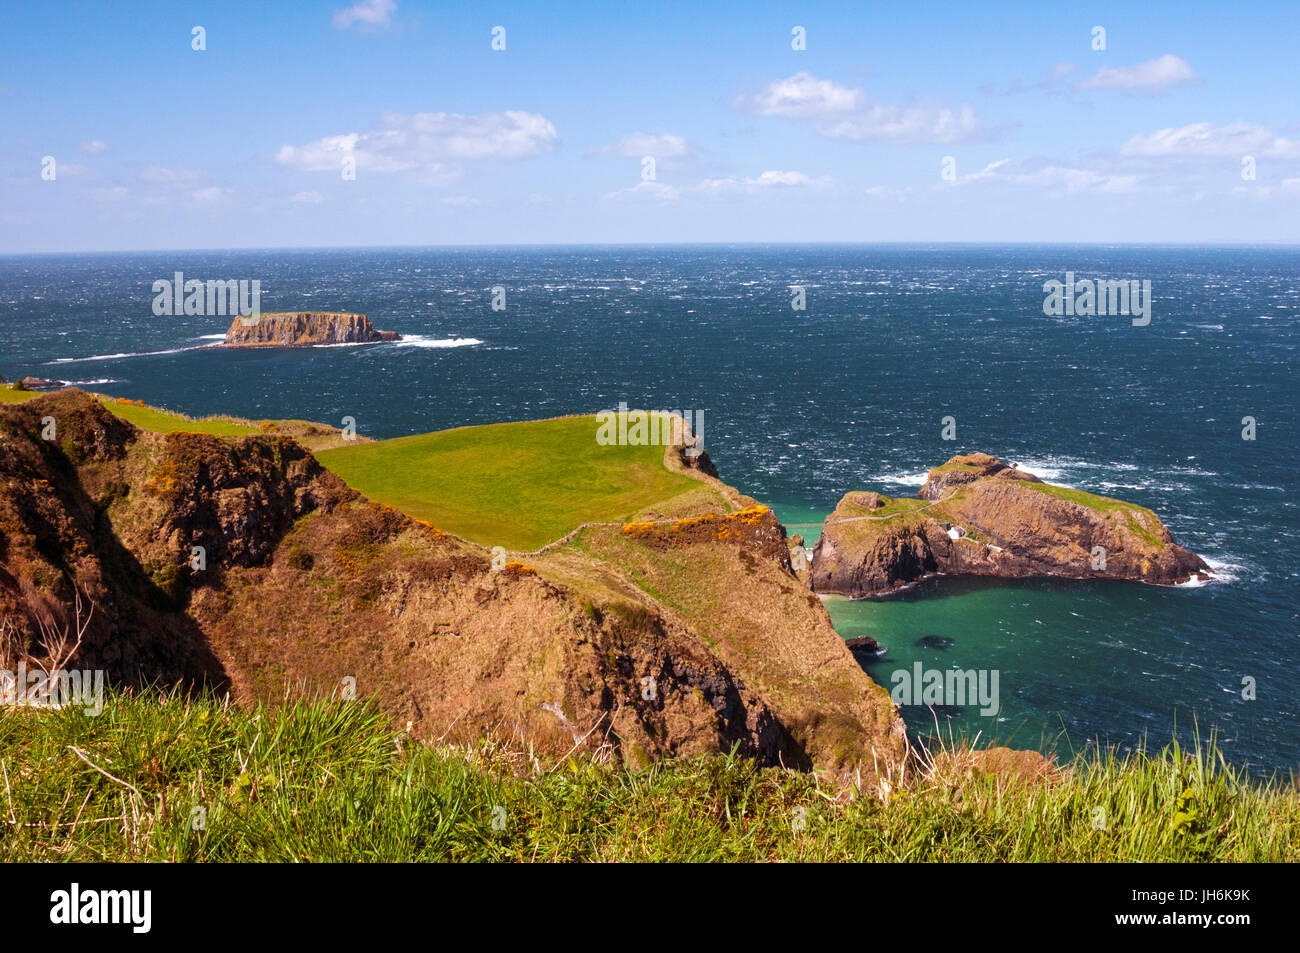 Carrick-a-Rede rope bridge and the Atlantic Ocean on a sunny and windy day, Ballintoy, Northern Ireland - Stock Image